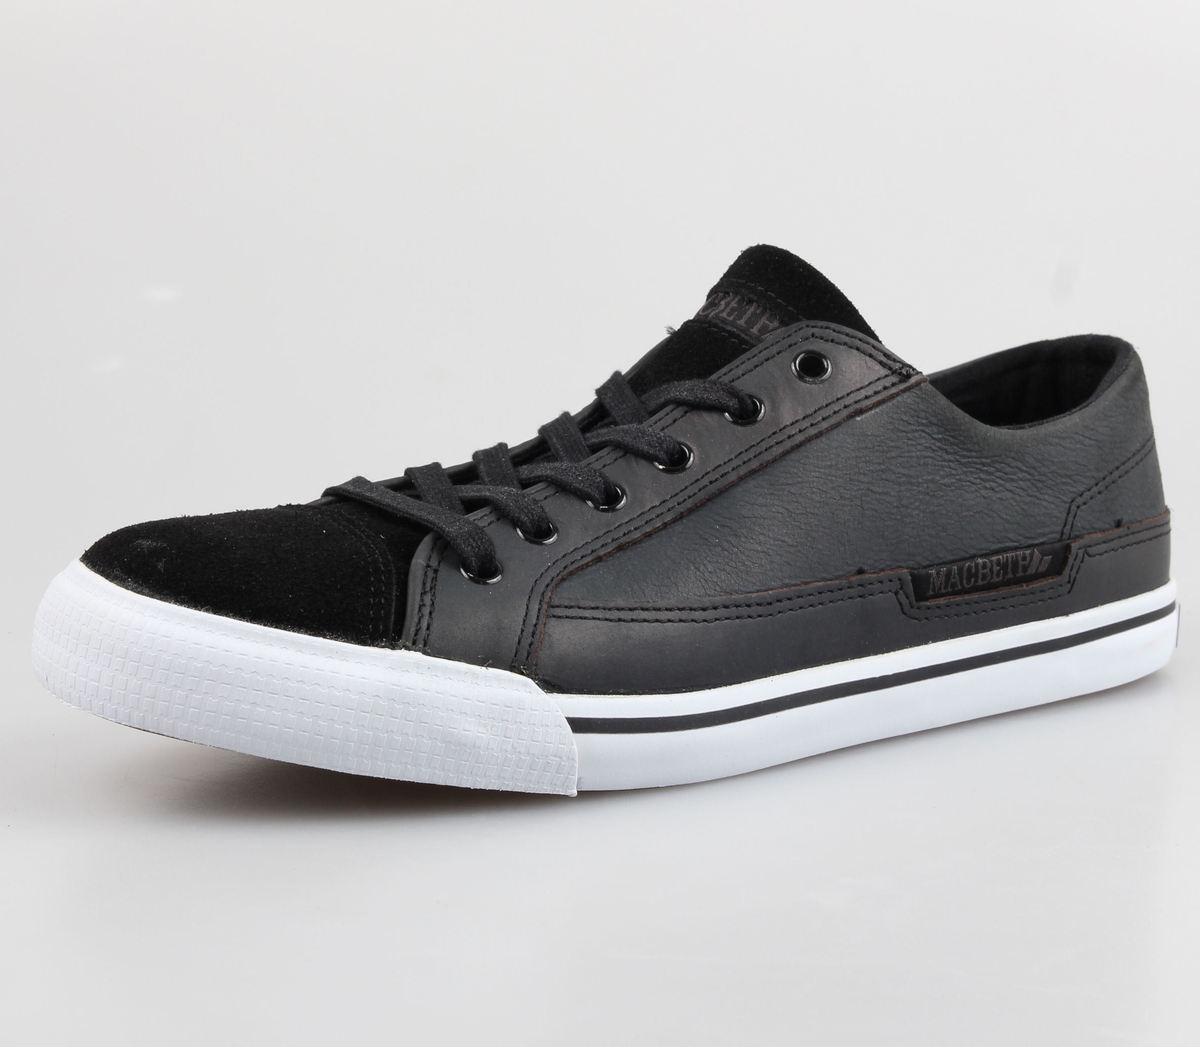 boty MACBETH - Matthew (č.2) - Black/White Suede&Nubuck